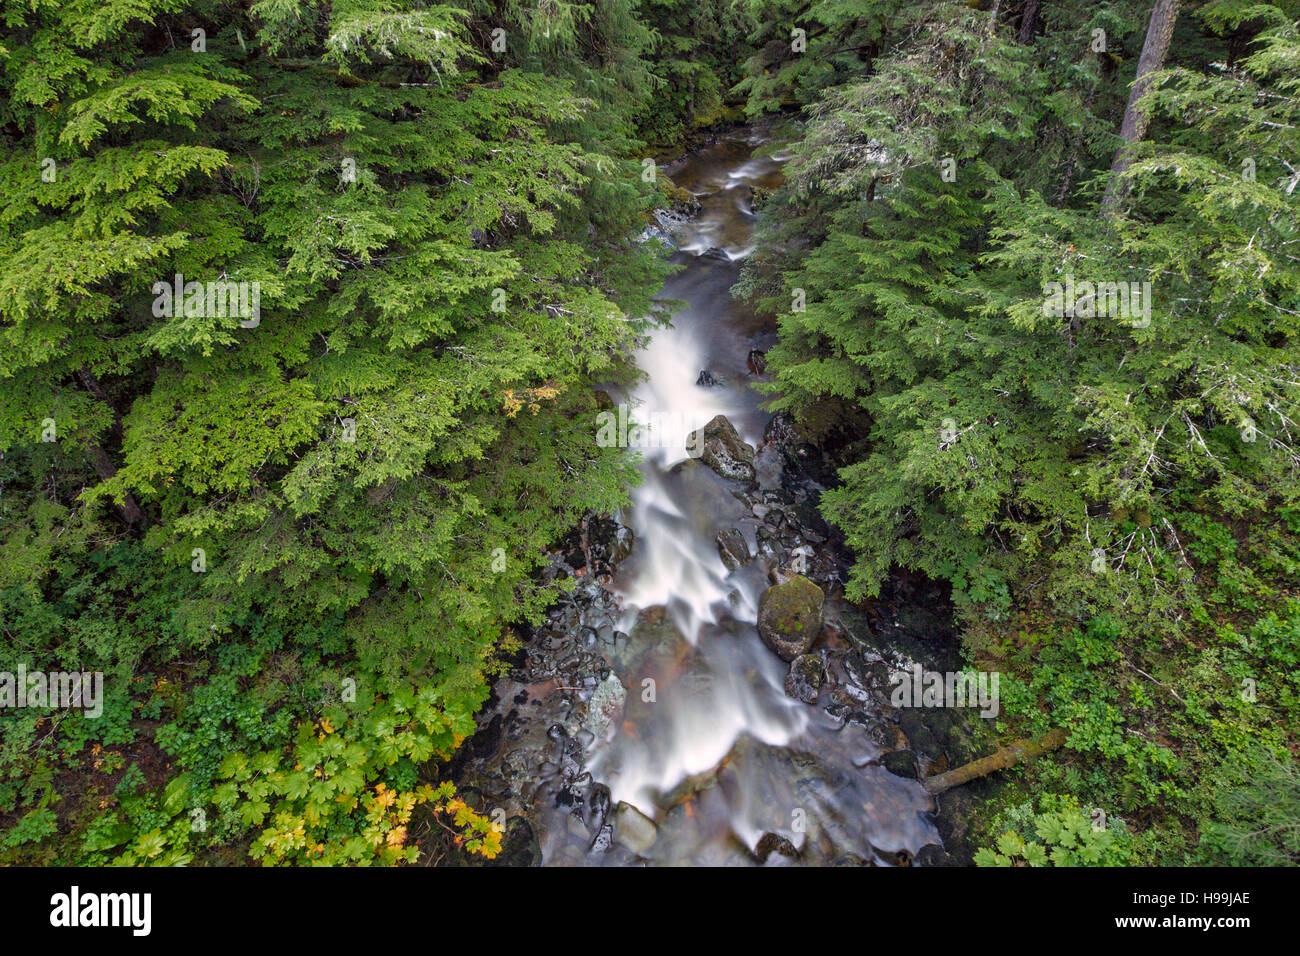 A river of the temperate coastal rain forest, Tongass National Forest, Alaska, USA - Stock Image